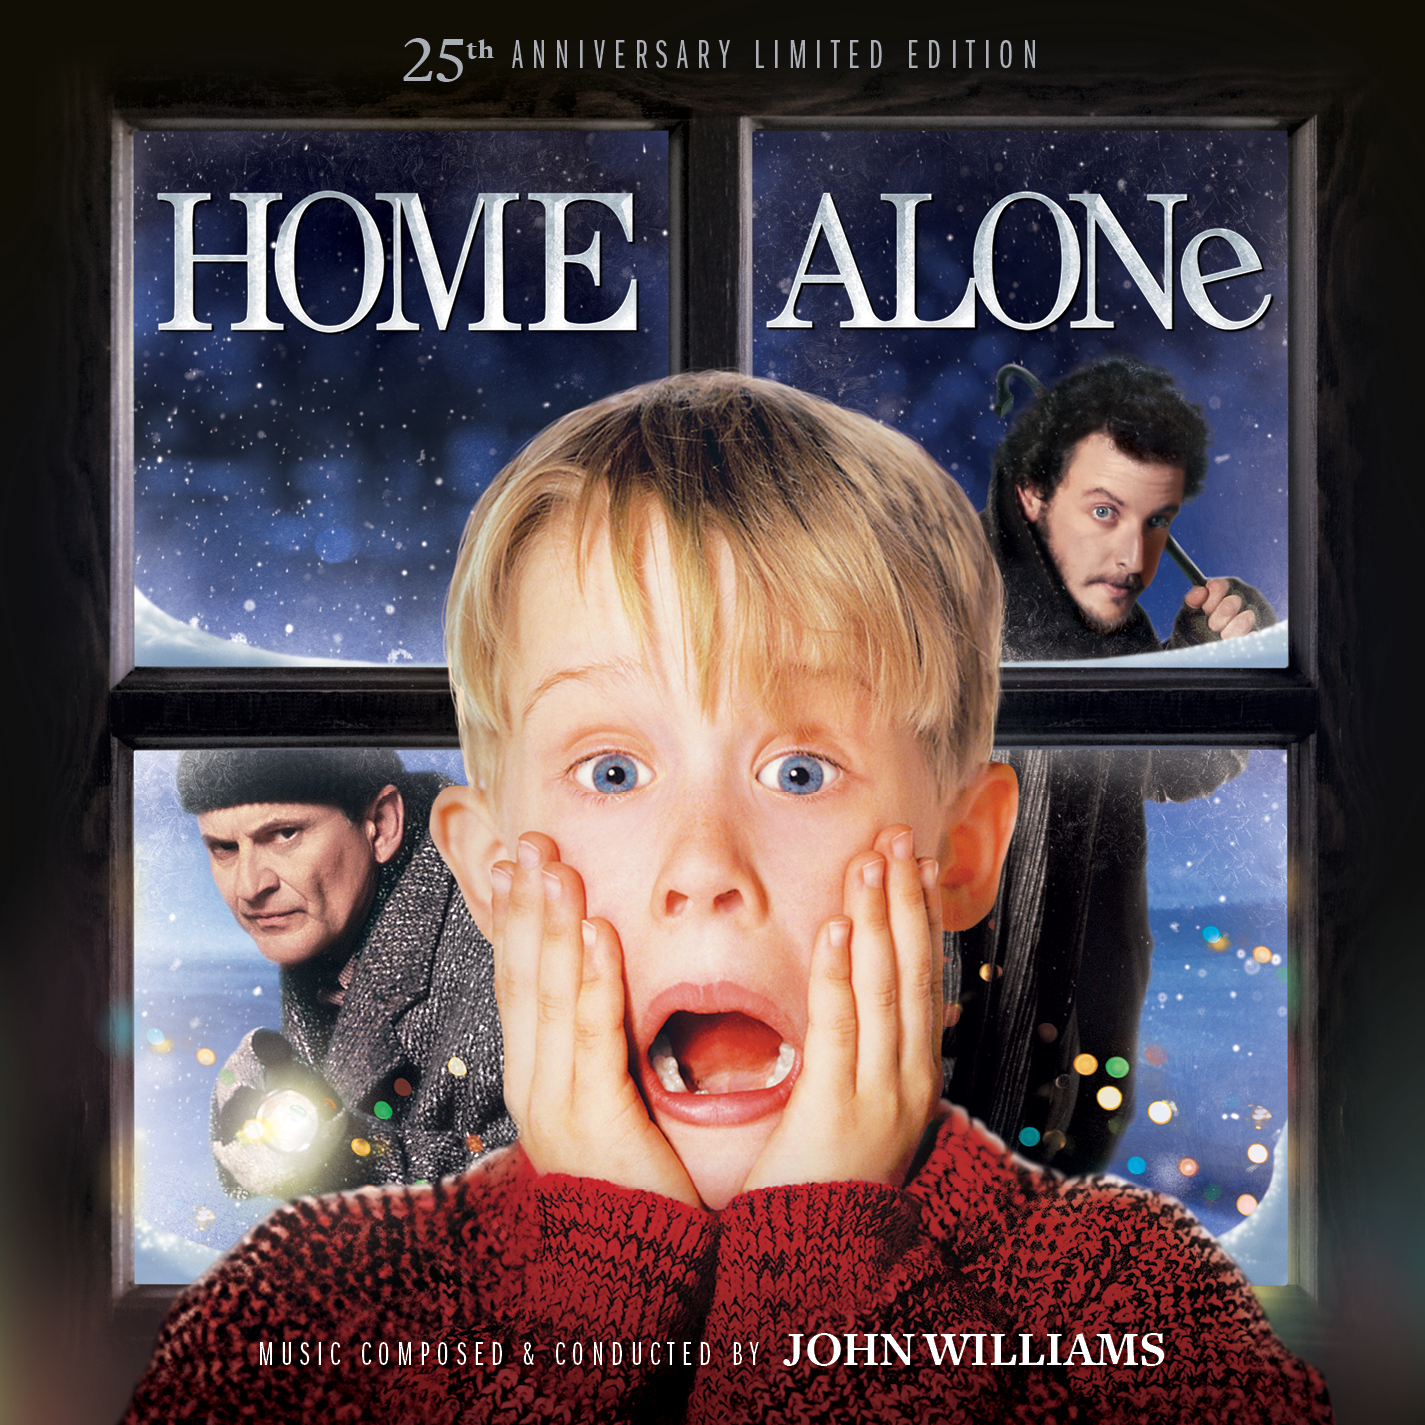 Home Alone is now a seminal movie with a cult following, and the reason why is simple: you won't won't find any other film with such a magical, festive atmosphere.